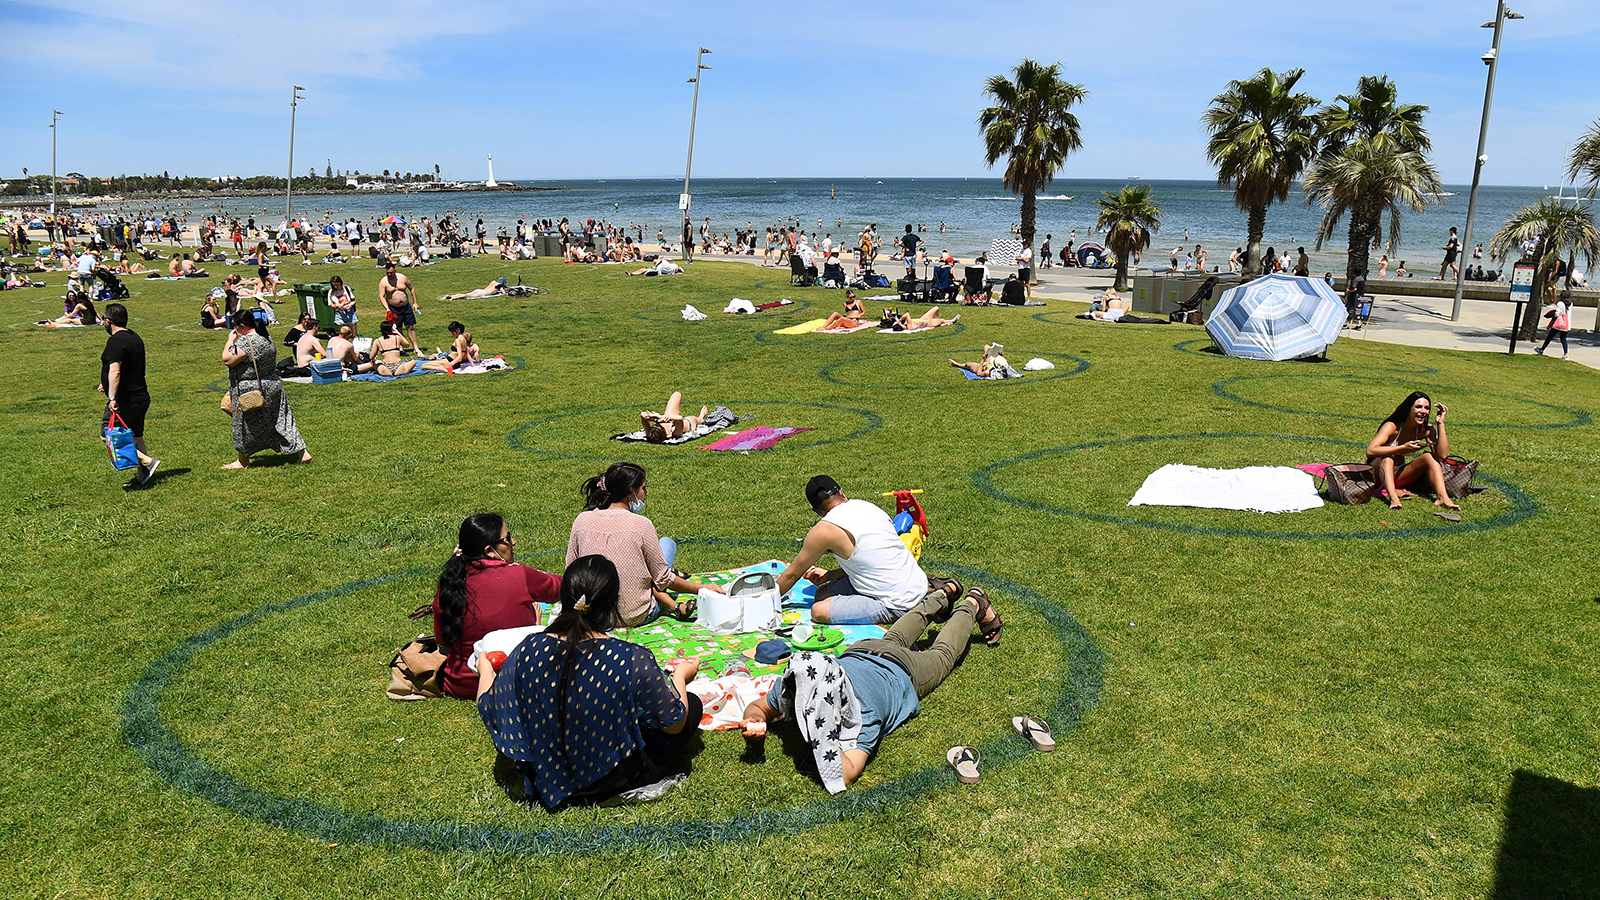 People enjoy the warm weather on Melbourne's St. Kilda Beach on November 3.